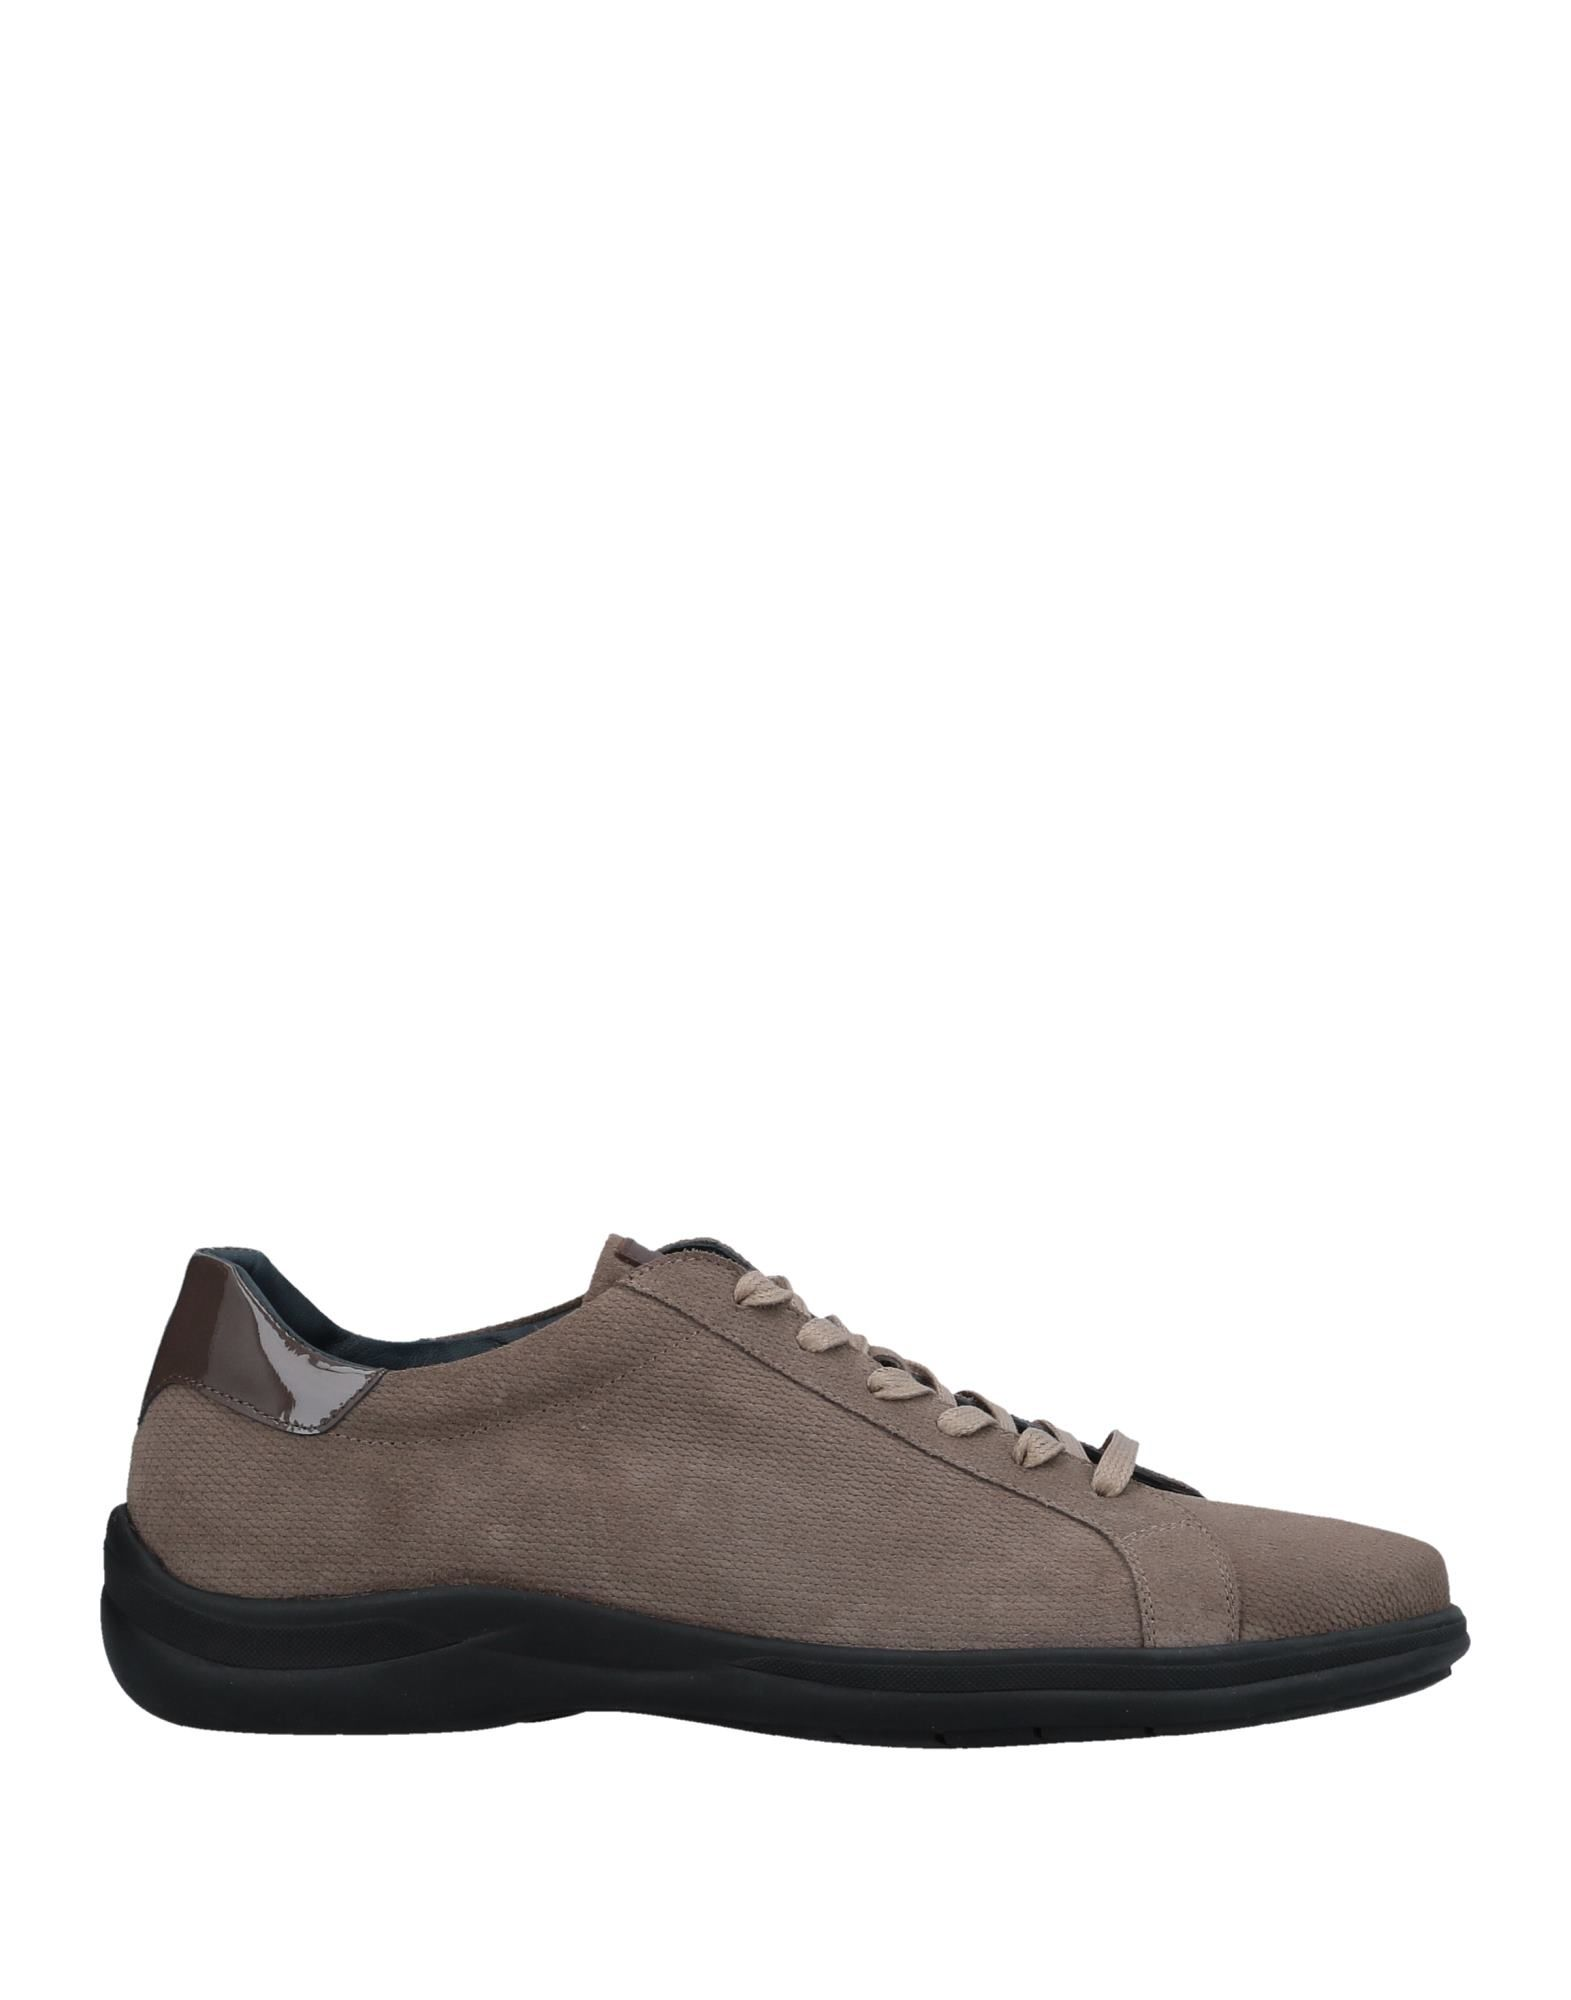 Sneakers Fabiano Ricci Homme - Sneakers Fabiano Ricci  Gris Chaussures femme pas cher homme et femme